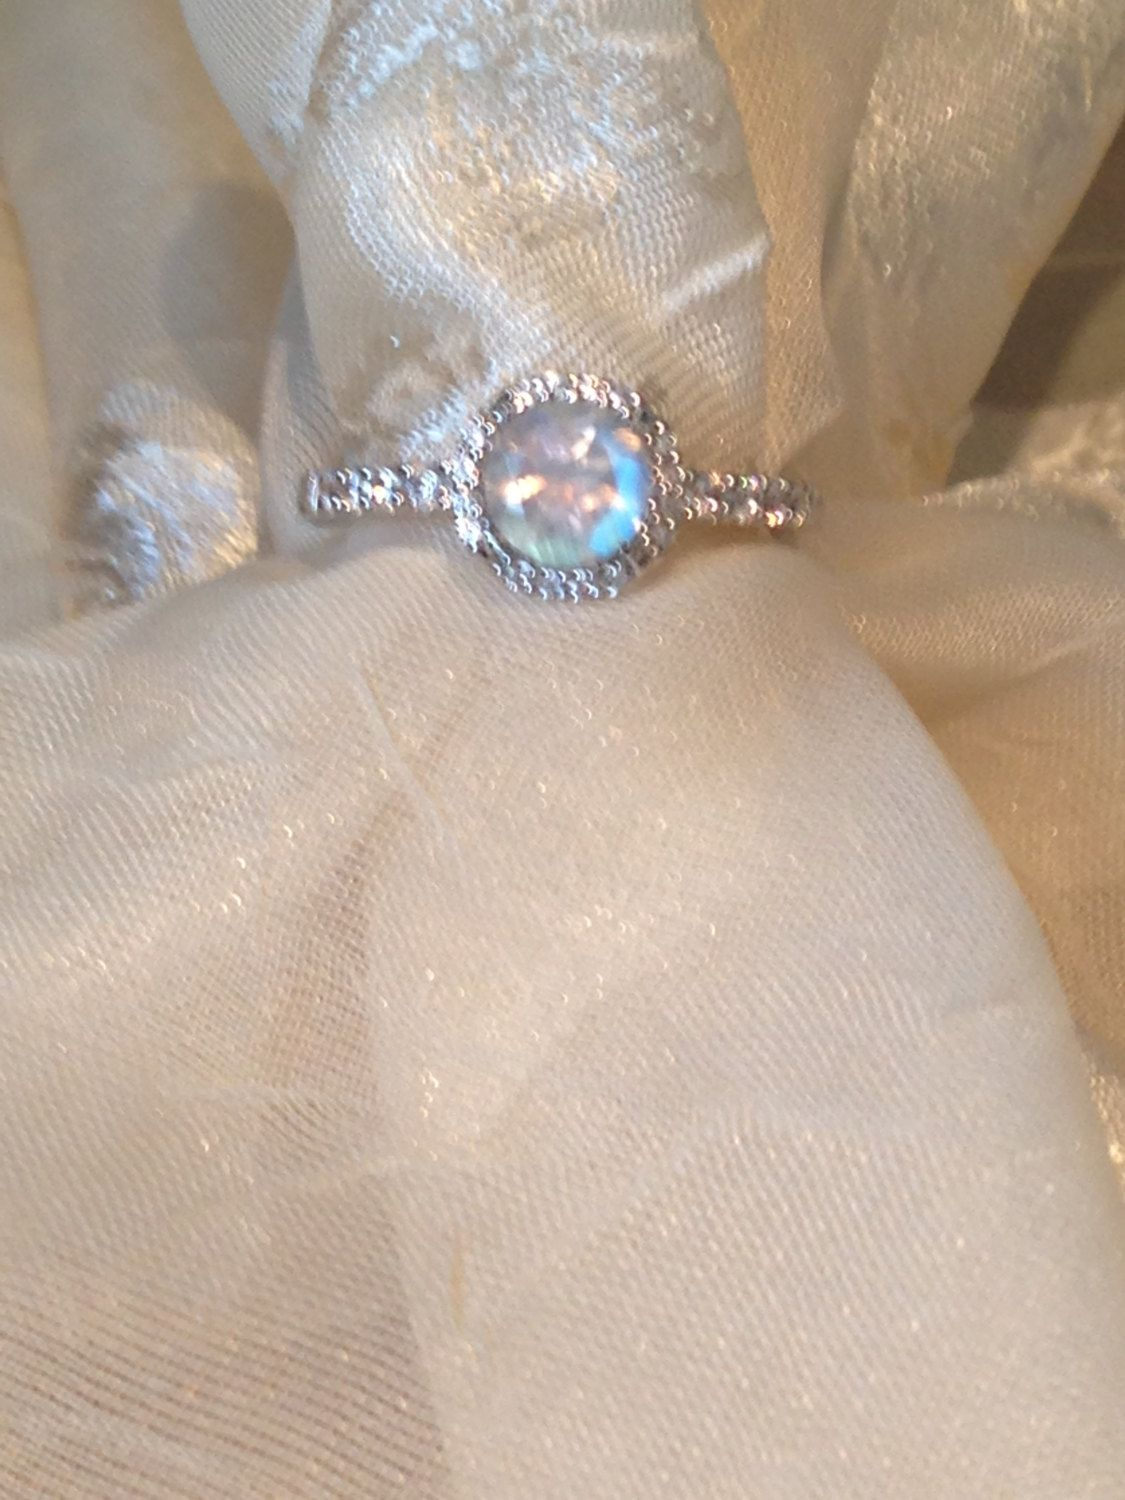 Rainbow Moonstone Engagement Ring One Day Engagement Rings